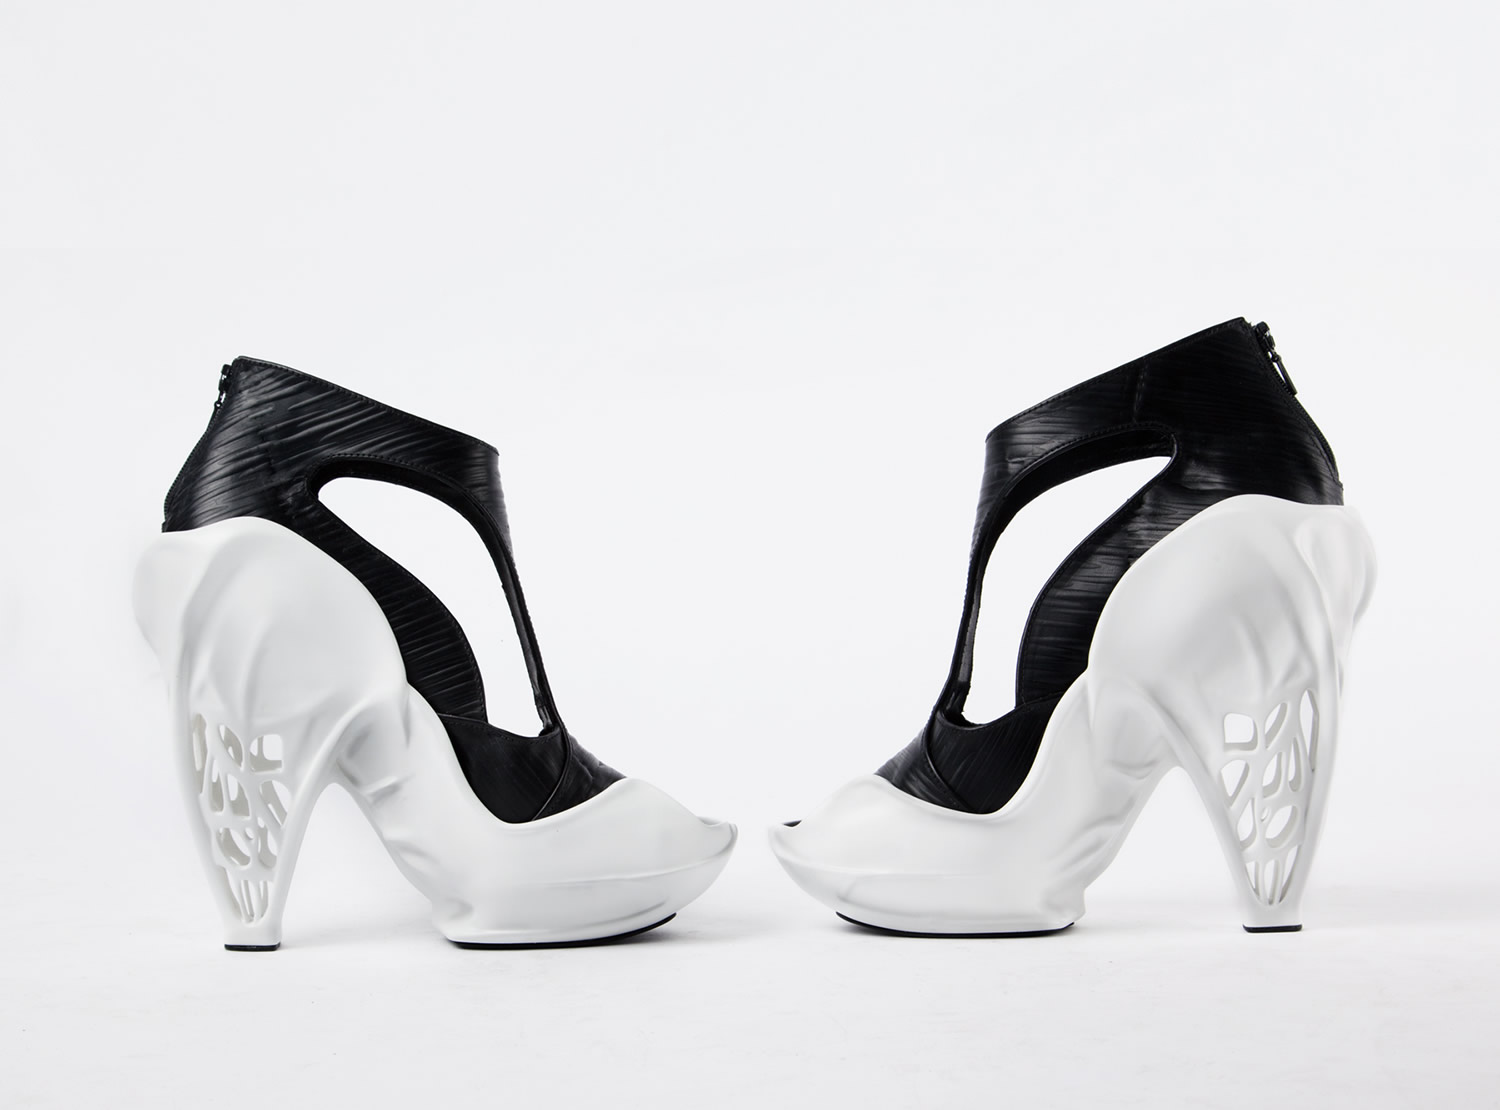 Breaking The 3-D Mould The 3D printed shoes. by Zoe Jia-Yu